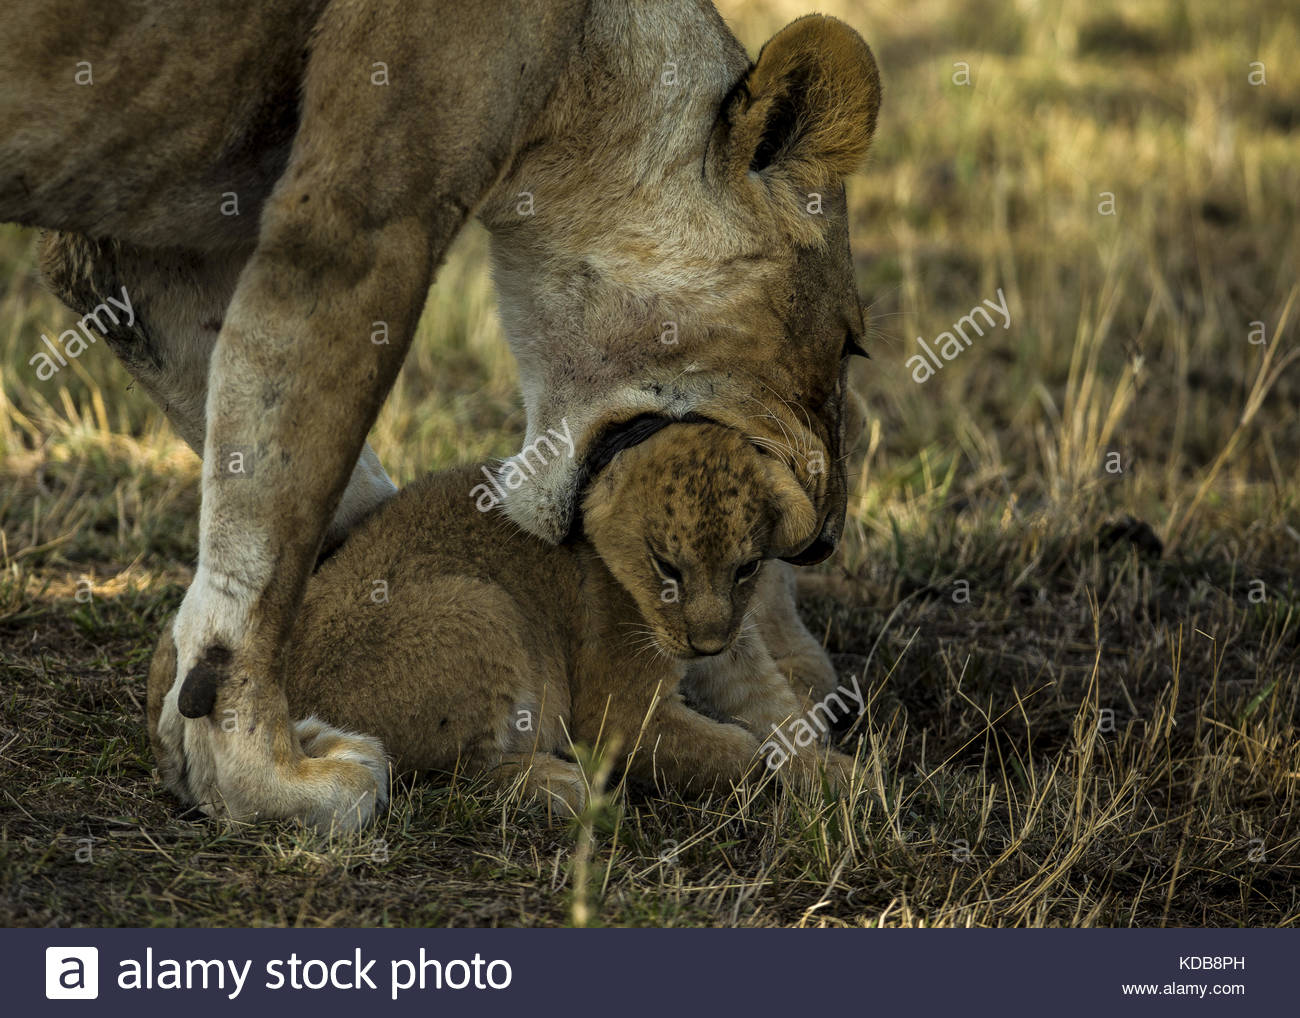 A lioness, Panthera leo, picks up her cub. - Stock Image